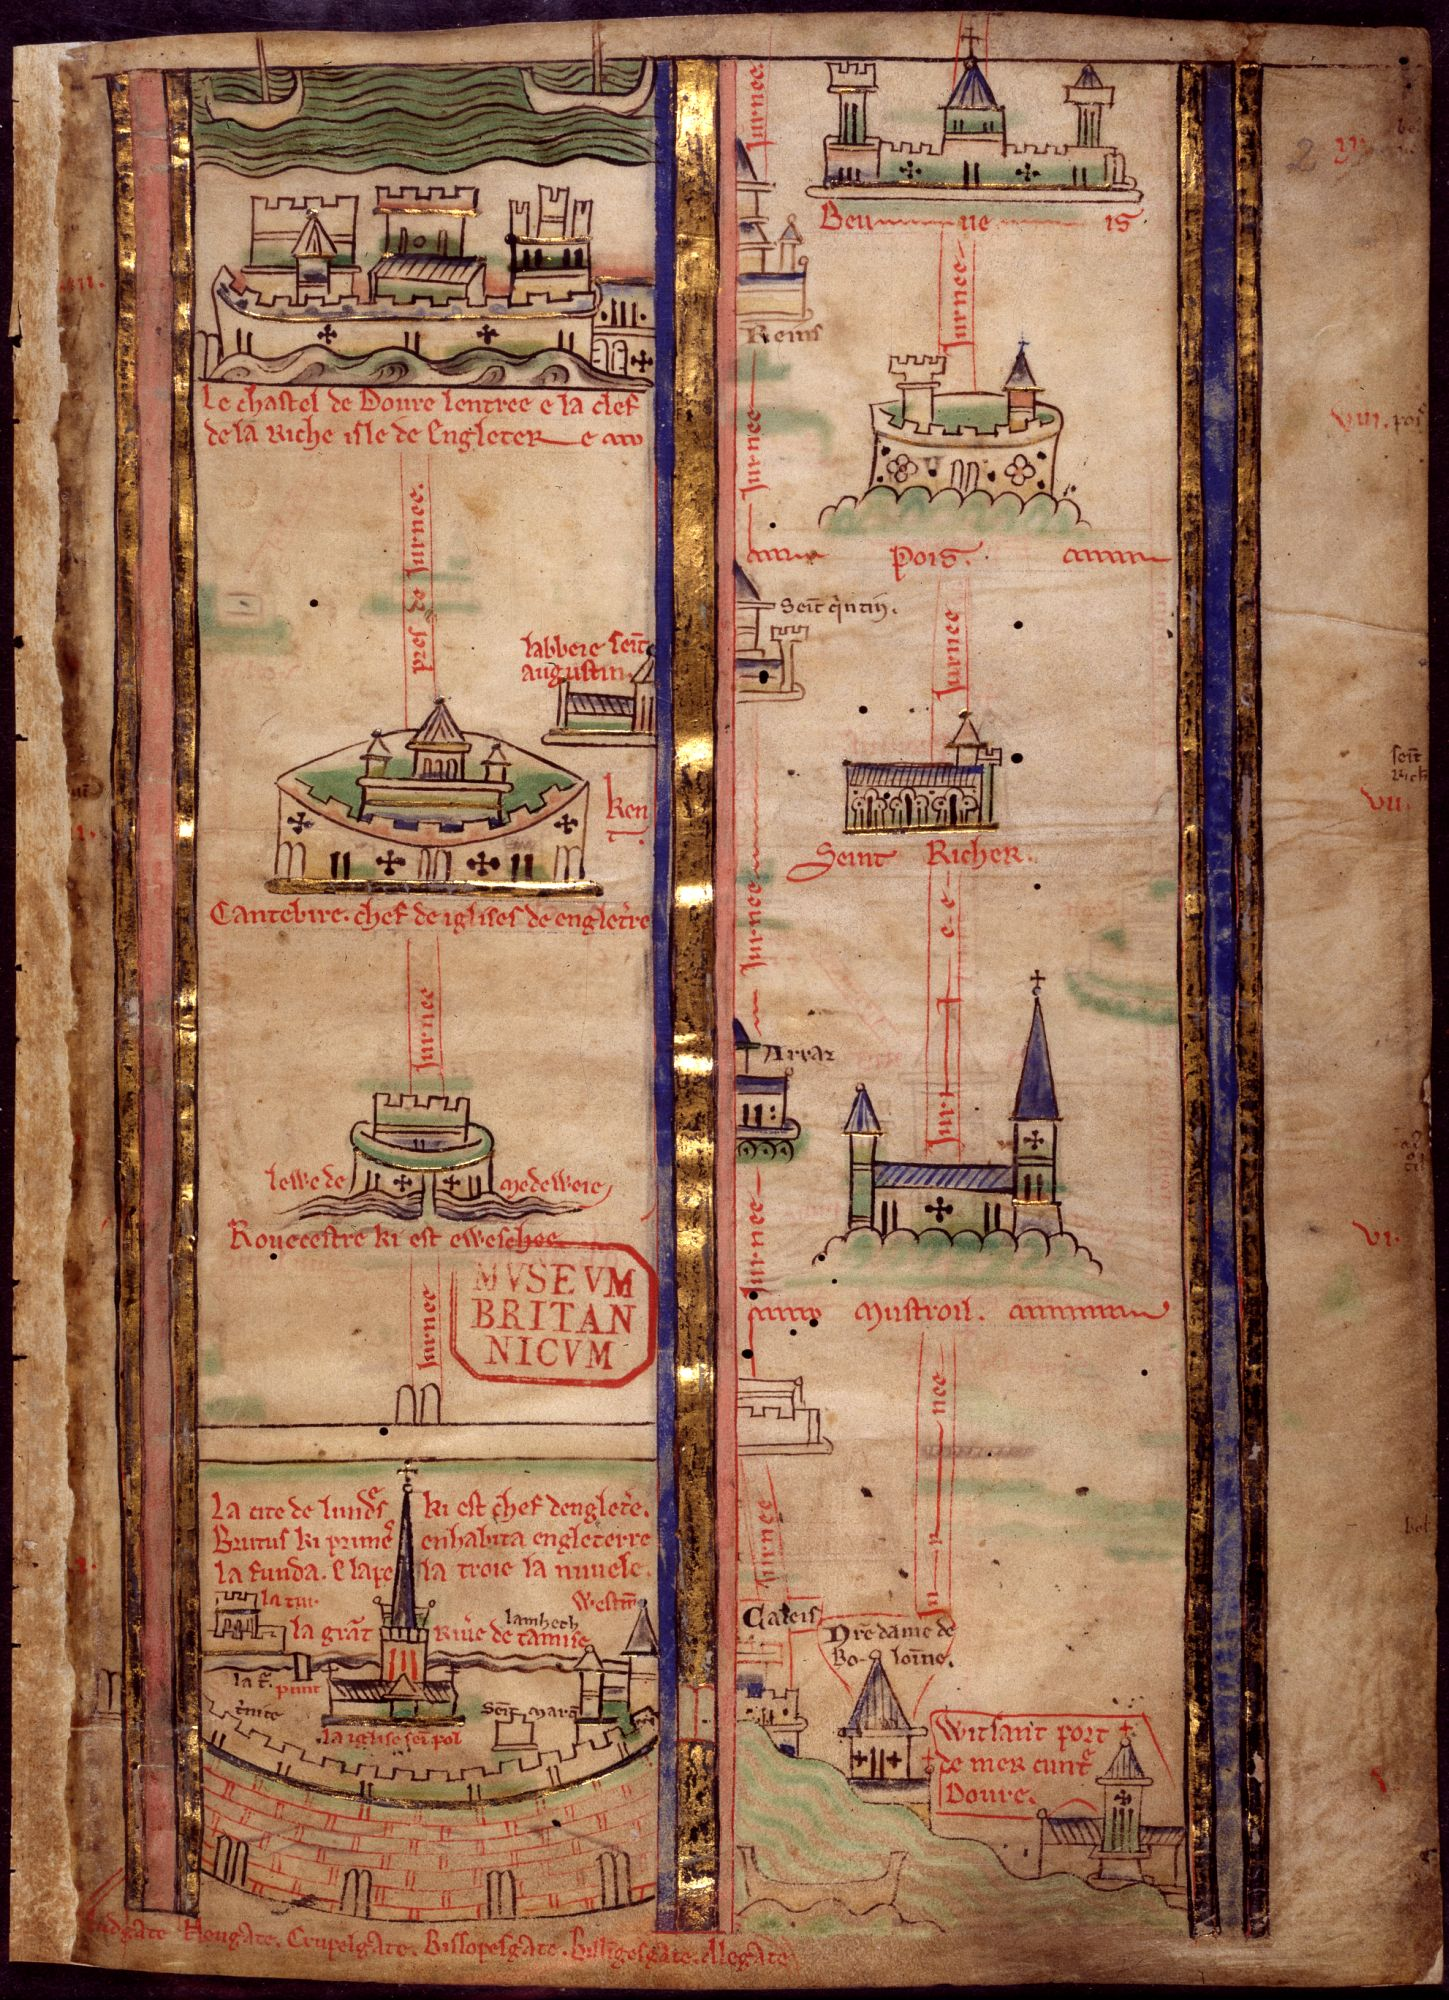 A linear map showing the route from London to Beauvais from Matthew Paris's Itinerary from London to the Holy Land.